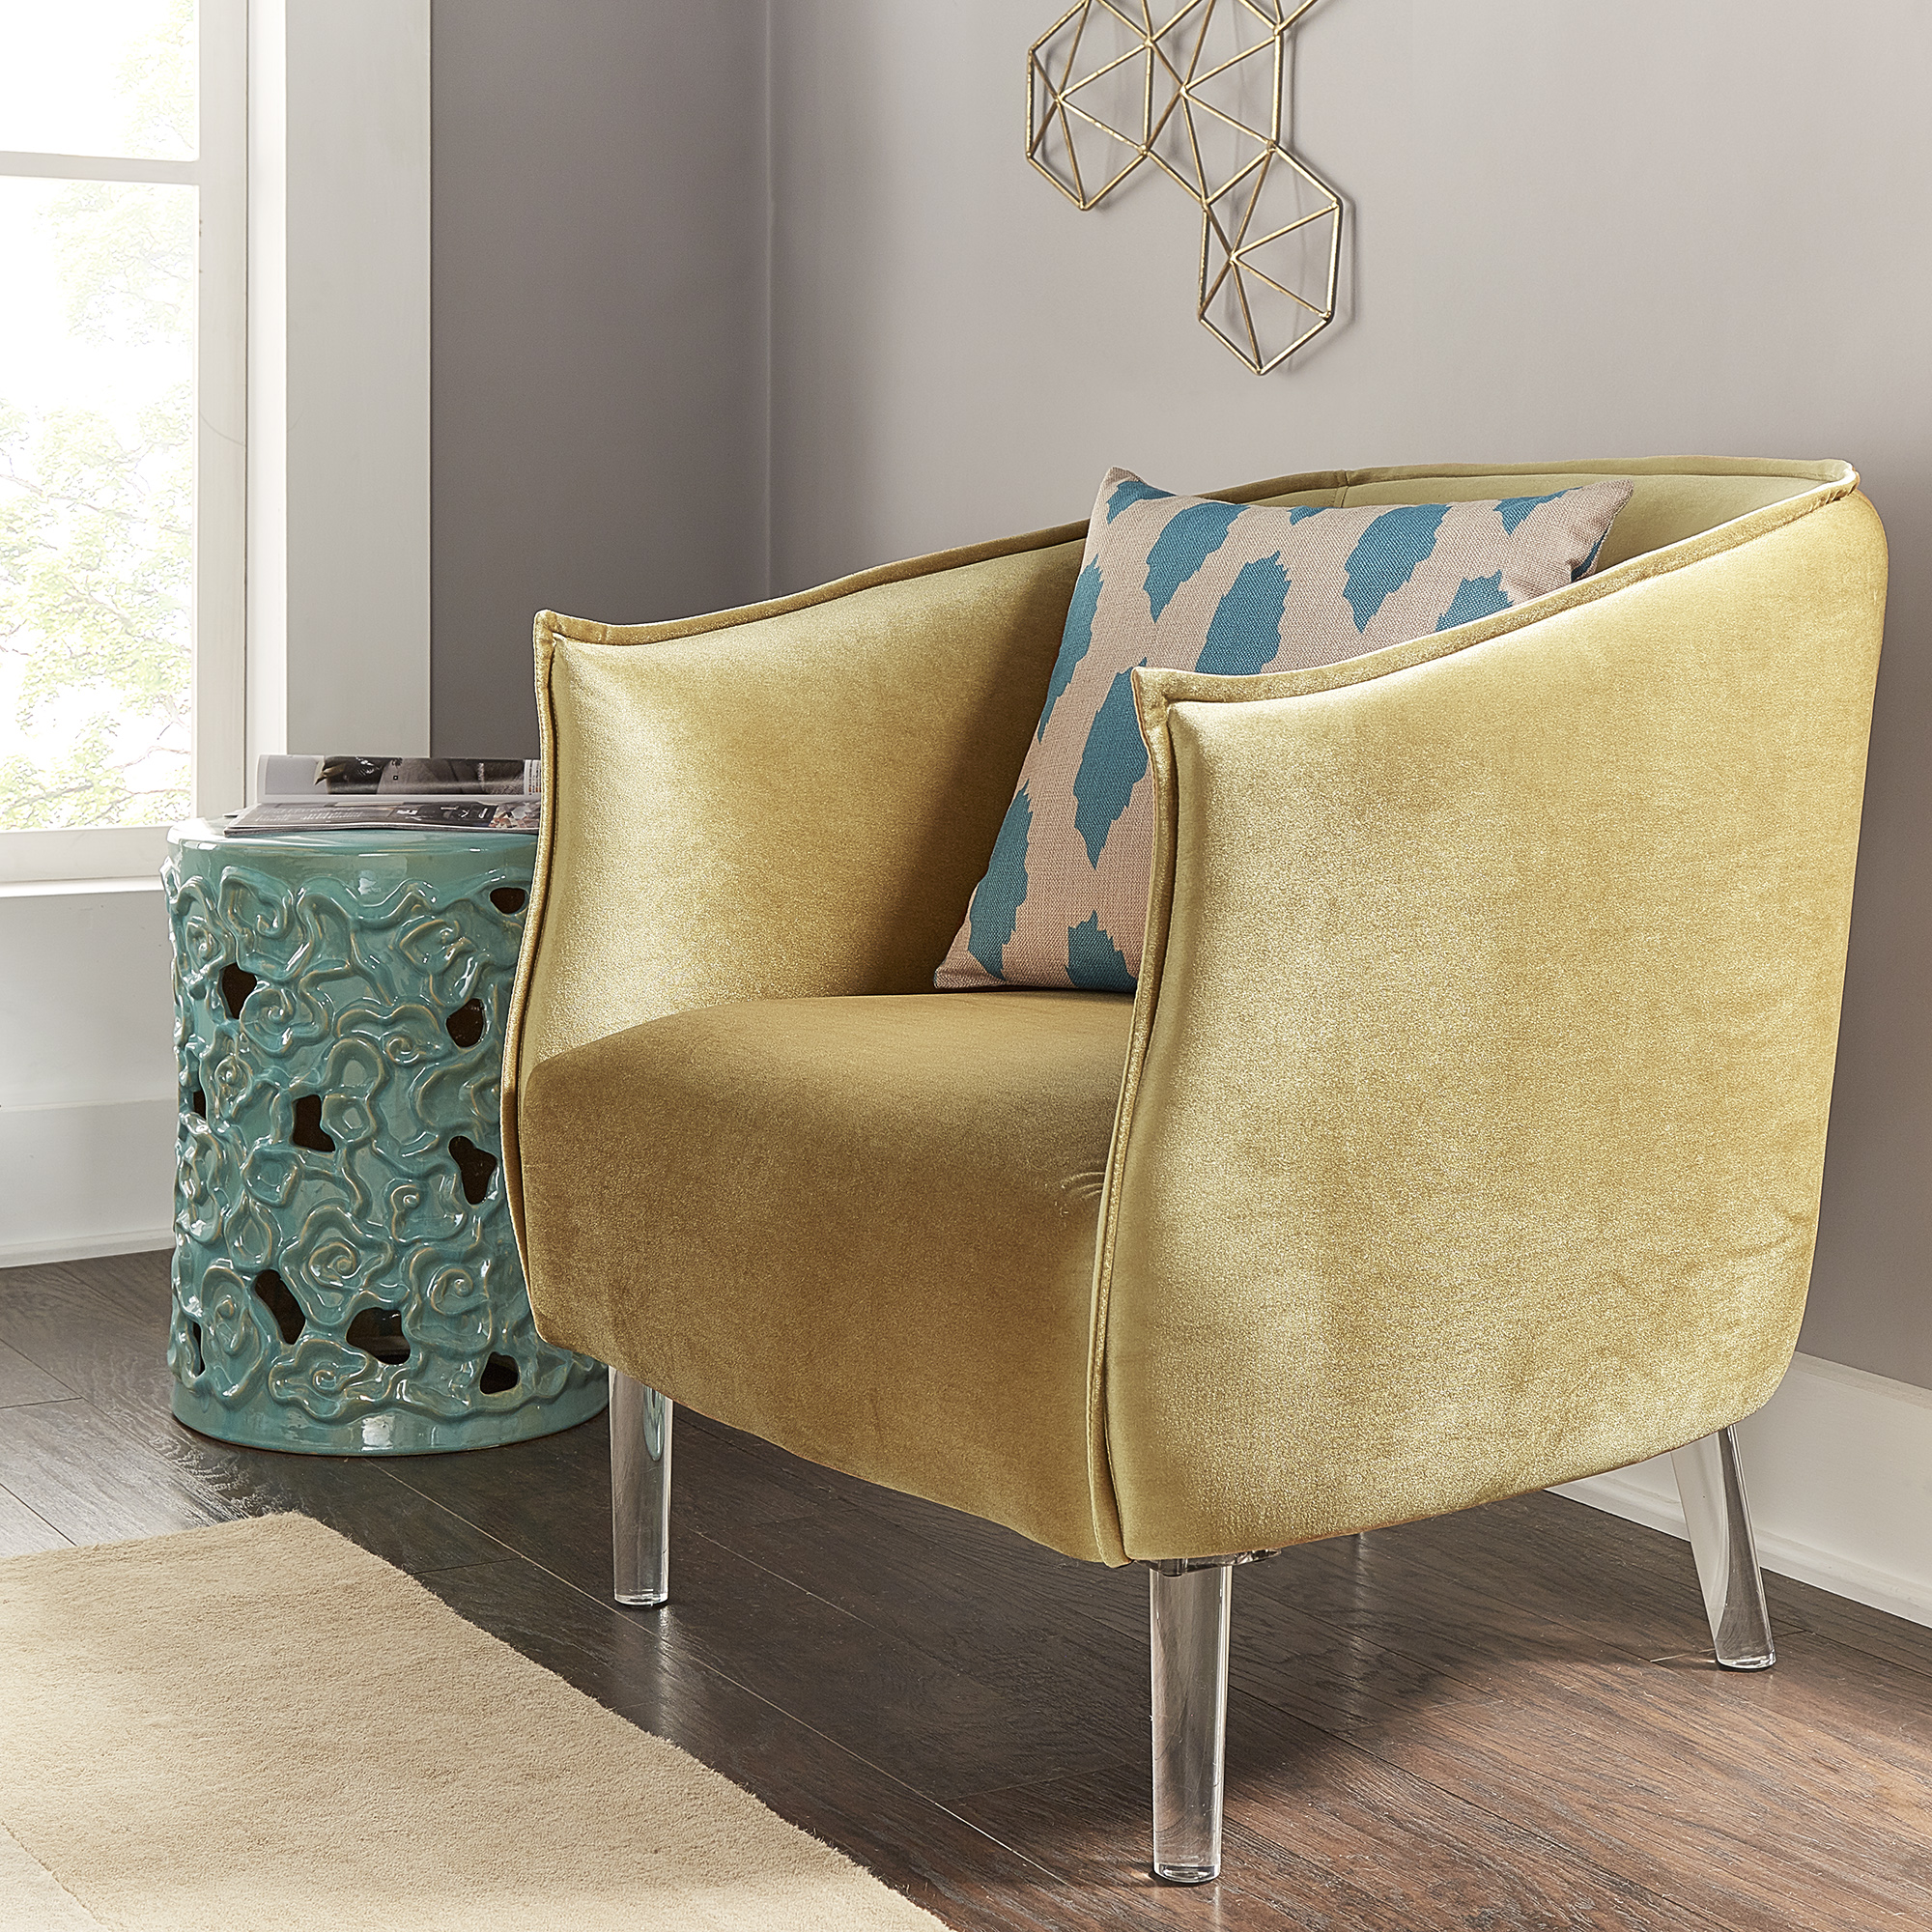 Weston Home Eldridge Barrel Accent Chair With Clear Legs, Multiple Colors